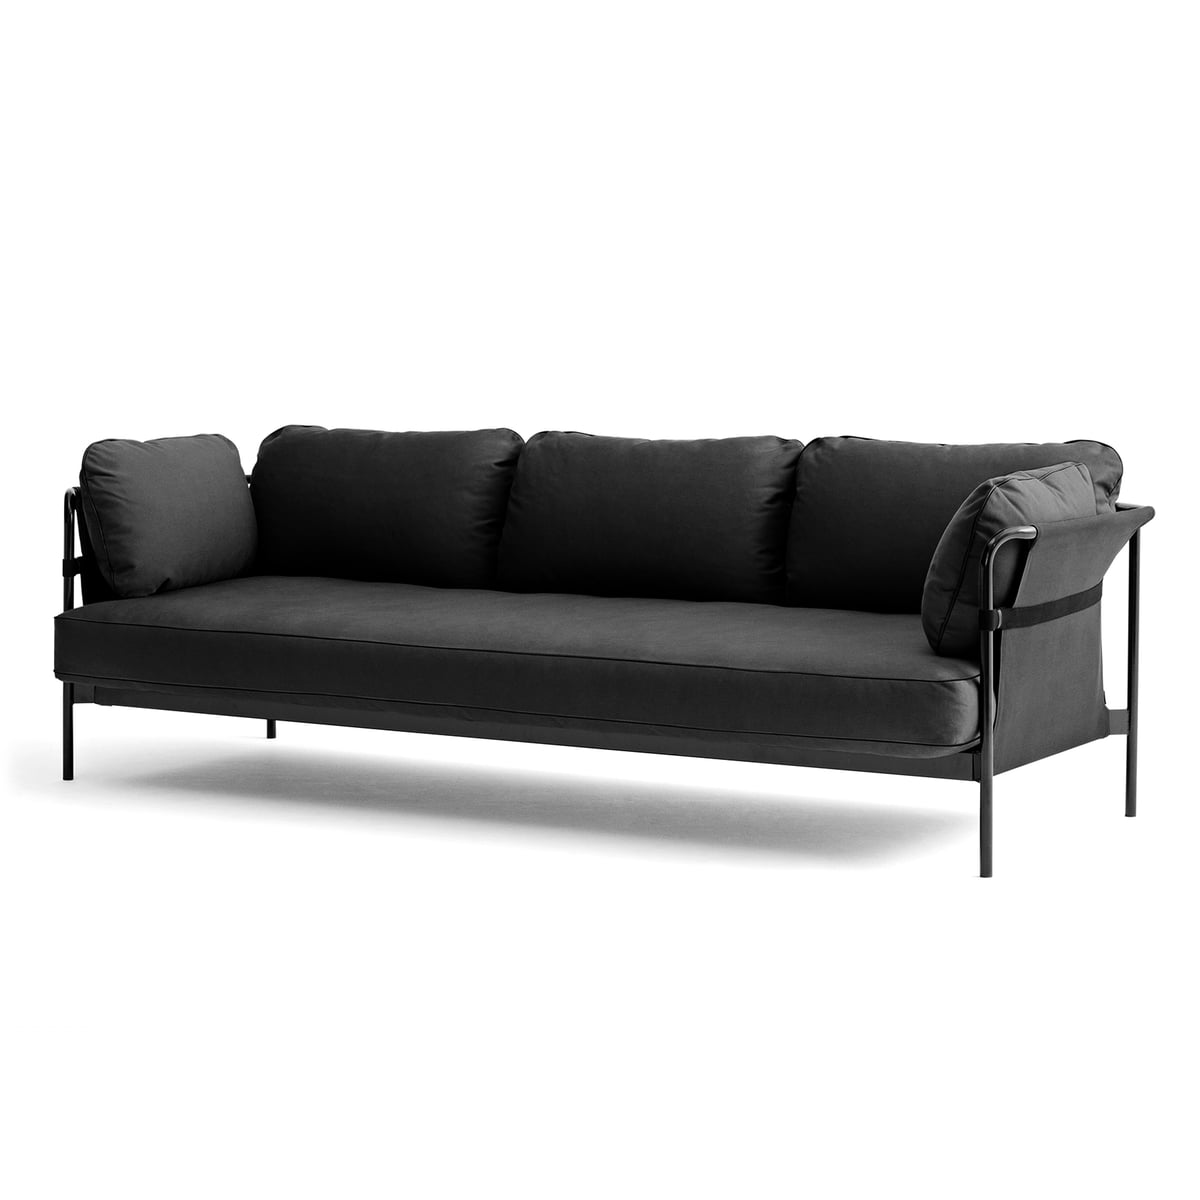 Hay 3 seater can sofa